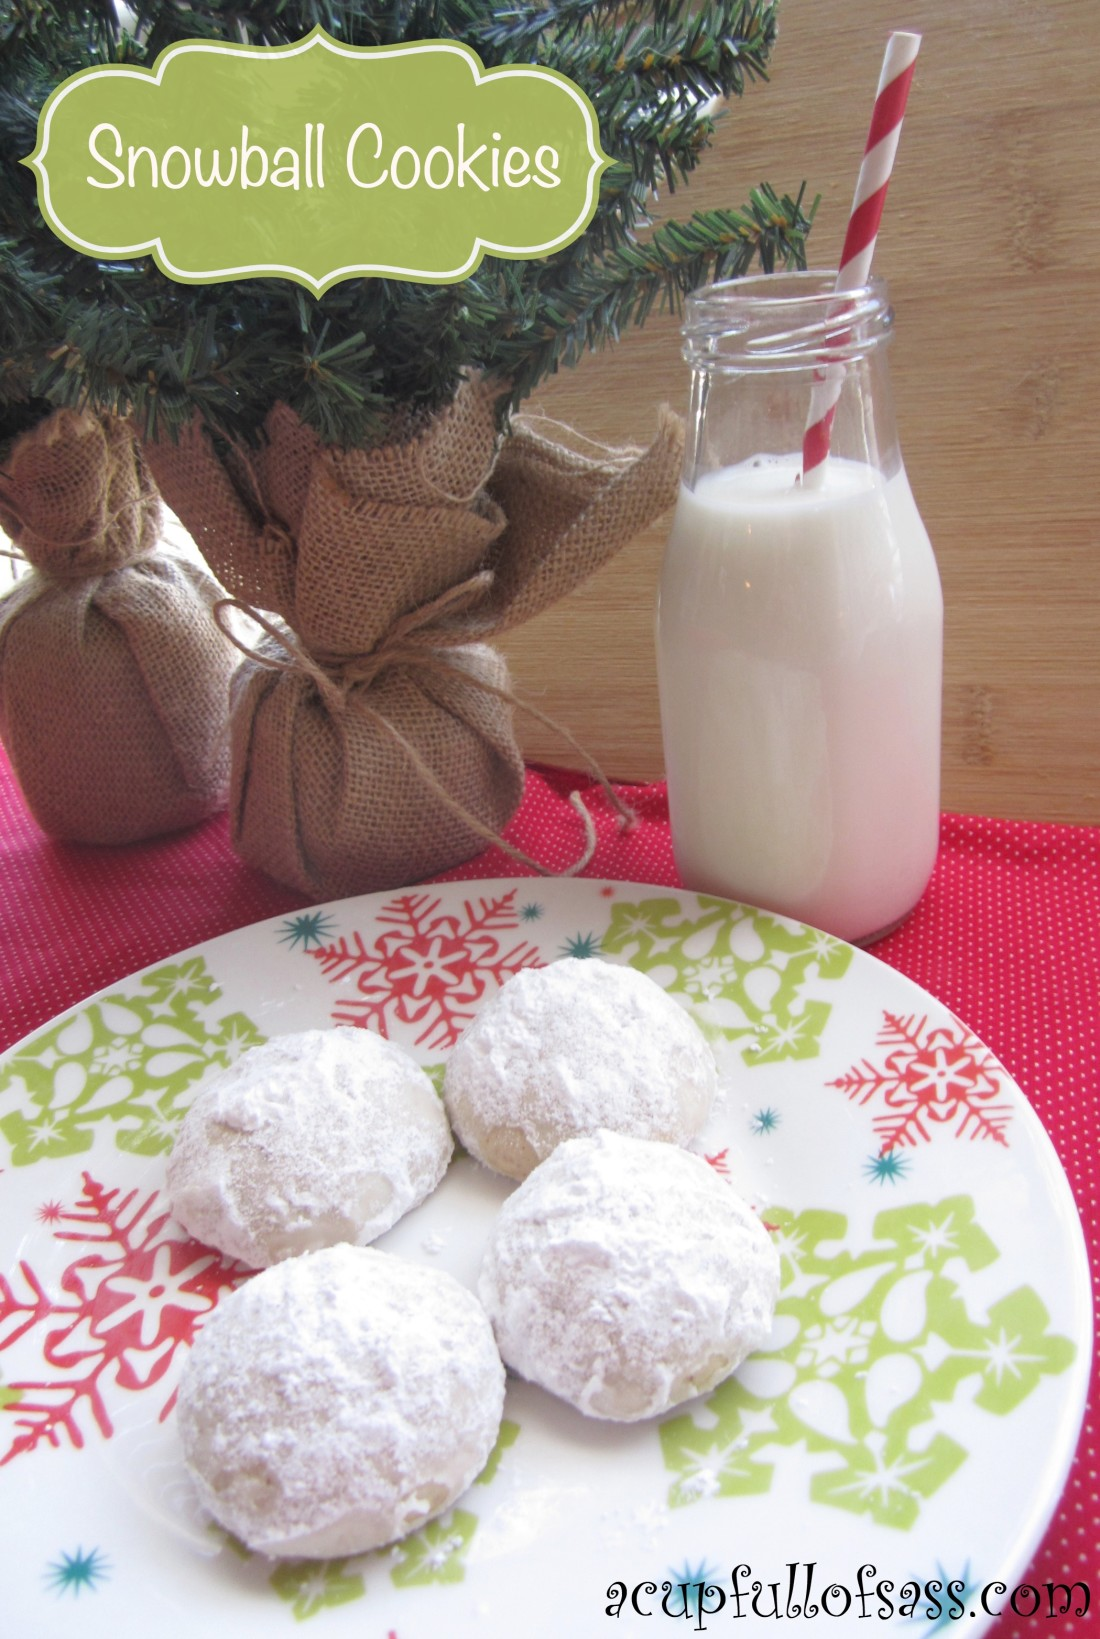 Snowball cookies, Russian Tea Cup, Mexican Wedding Cake